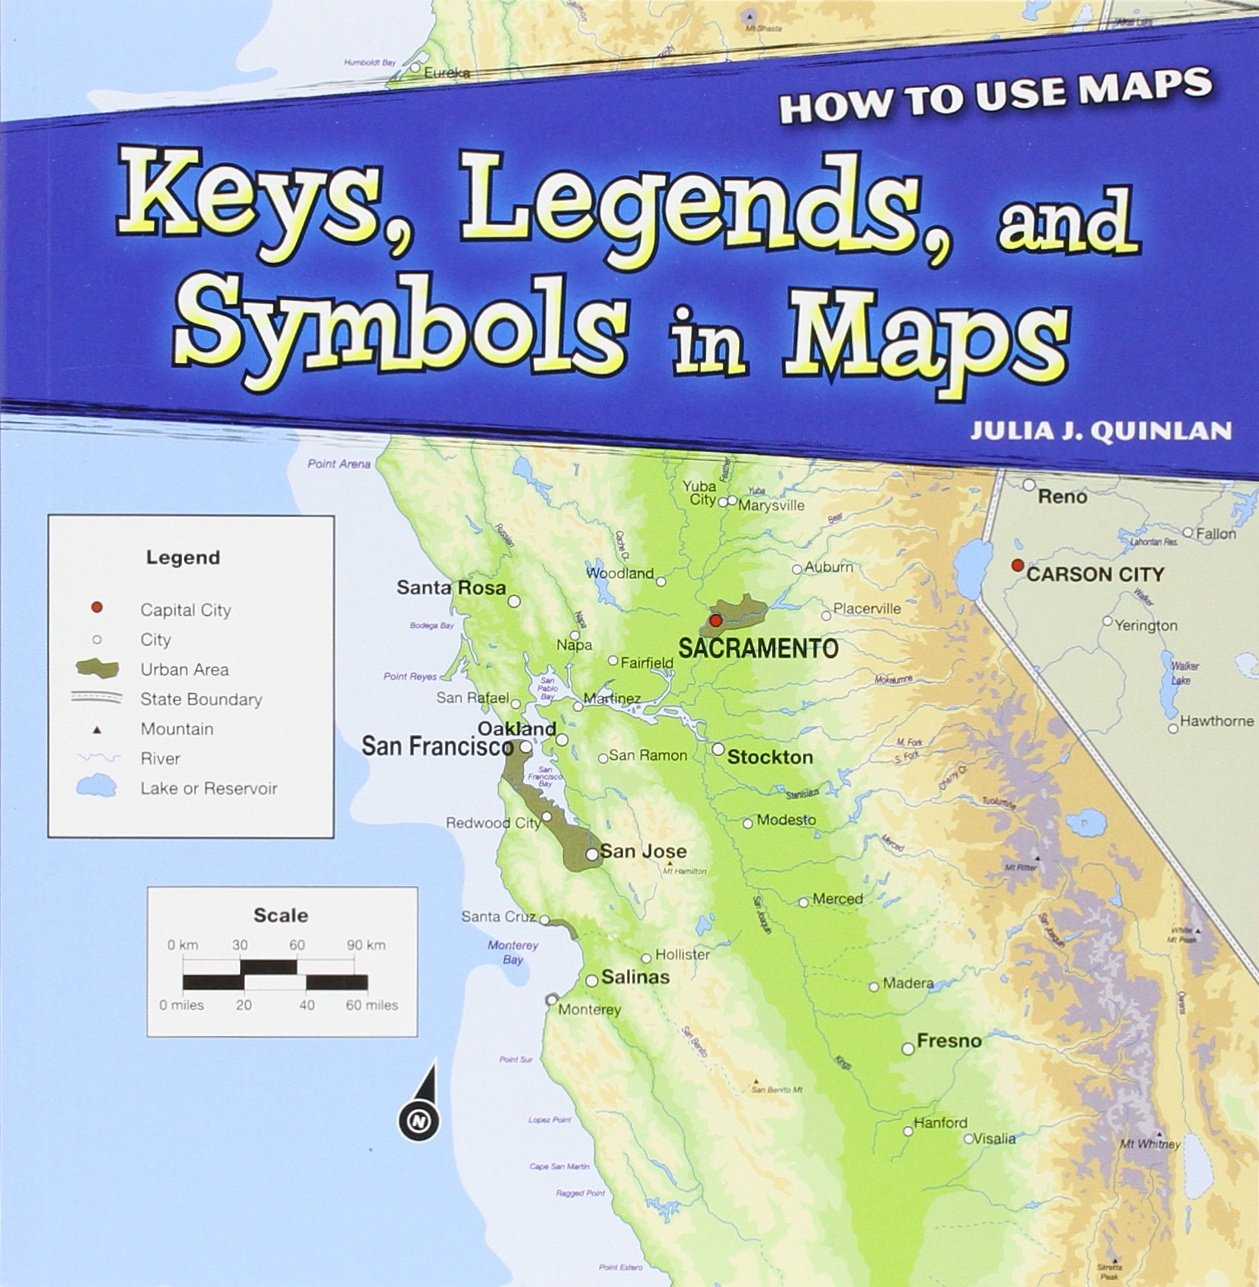 Keys Legends And Symbols In Maps How To Use Maps Powerkids Quinlan Julia J 9781448862665 Amazon Com Books